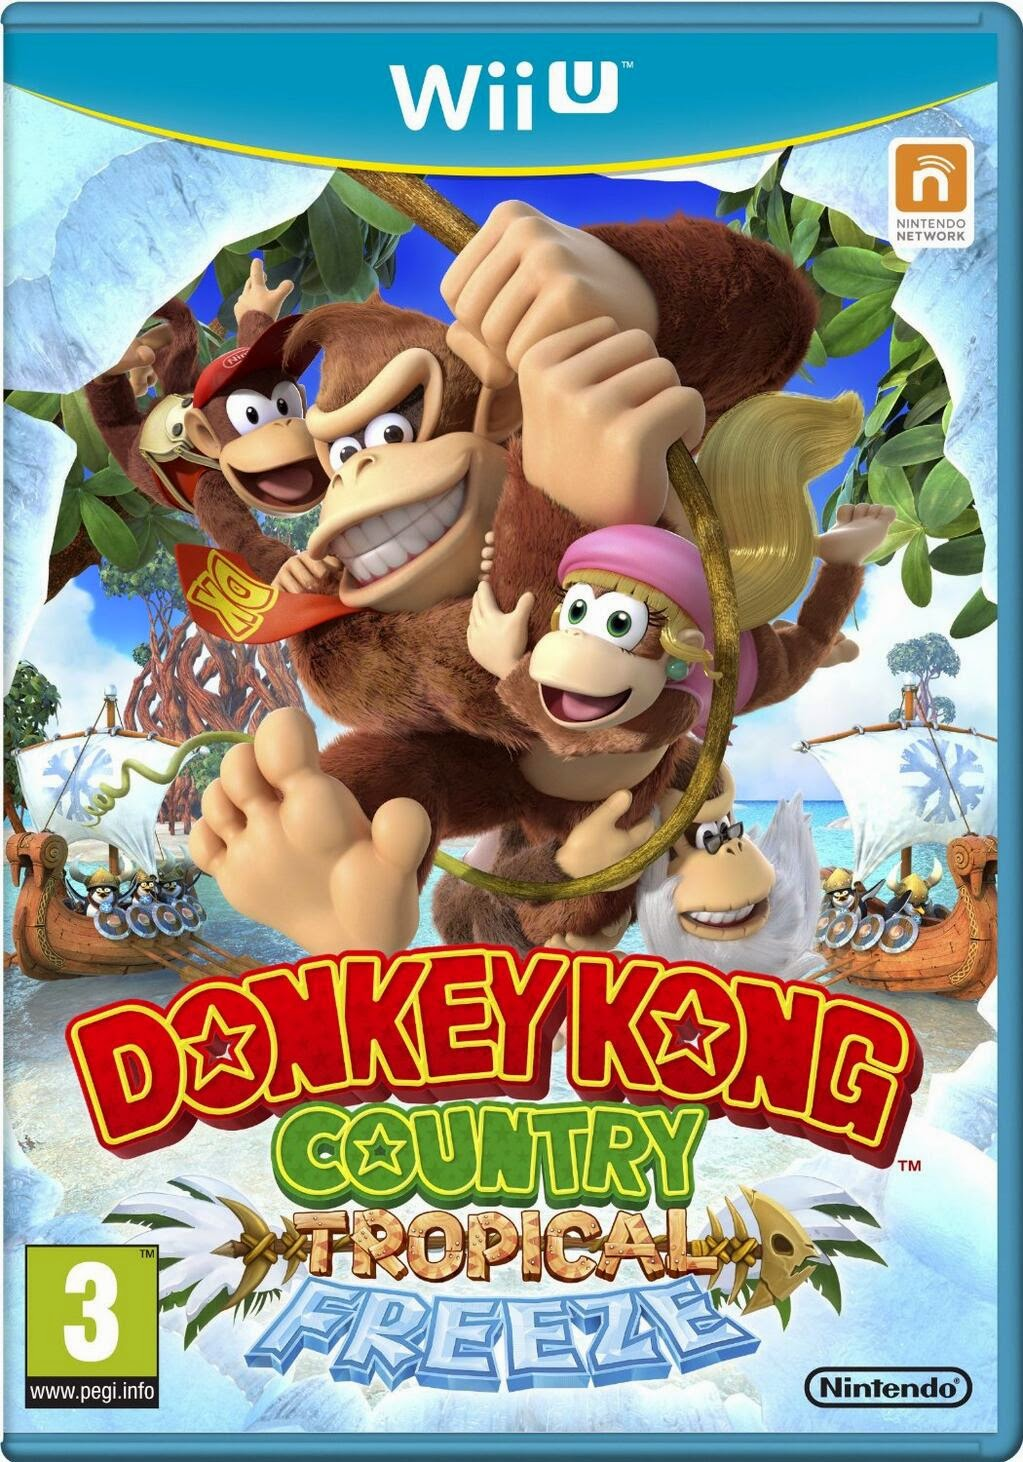 donkey kong, tropical freeze, wii u, box, cheats